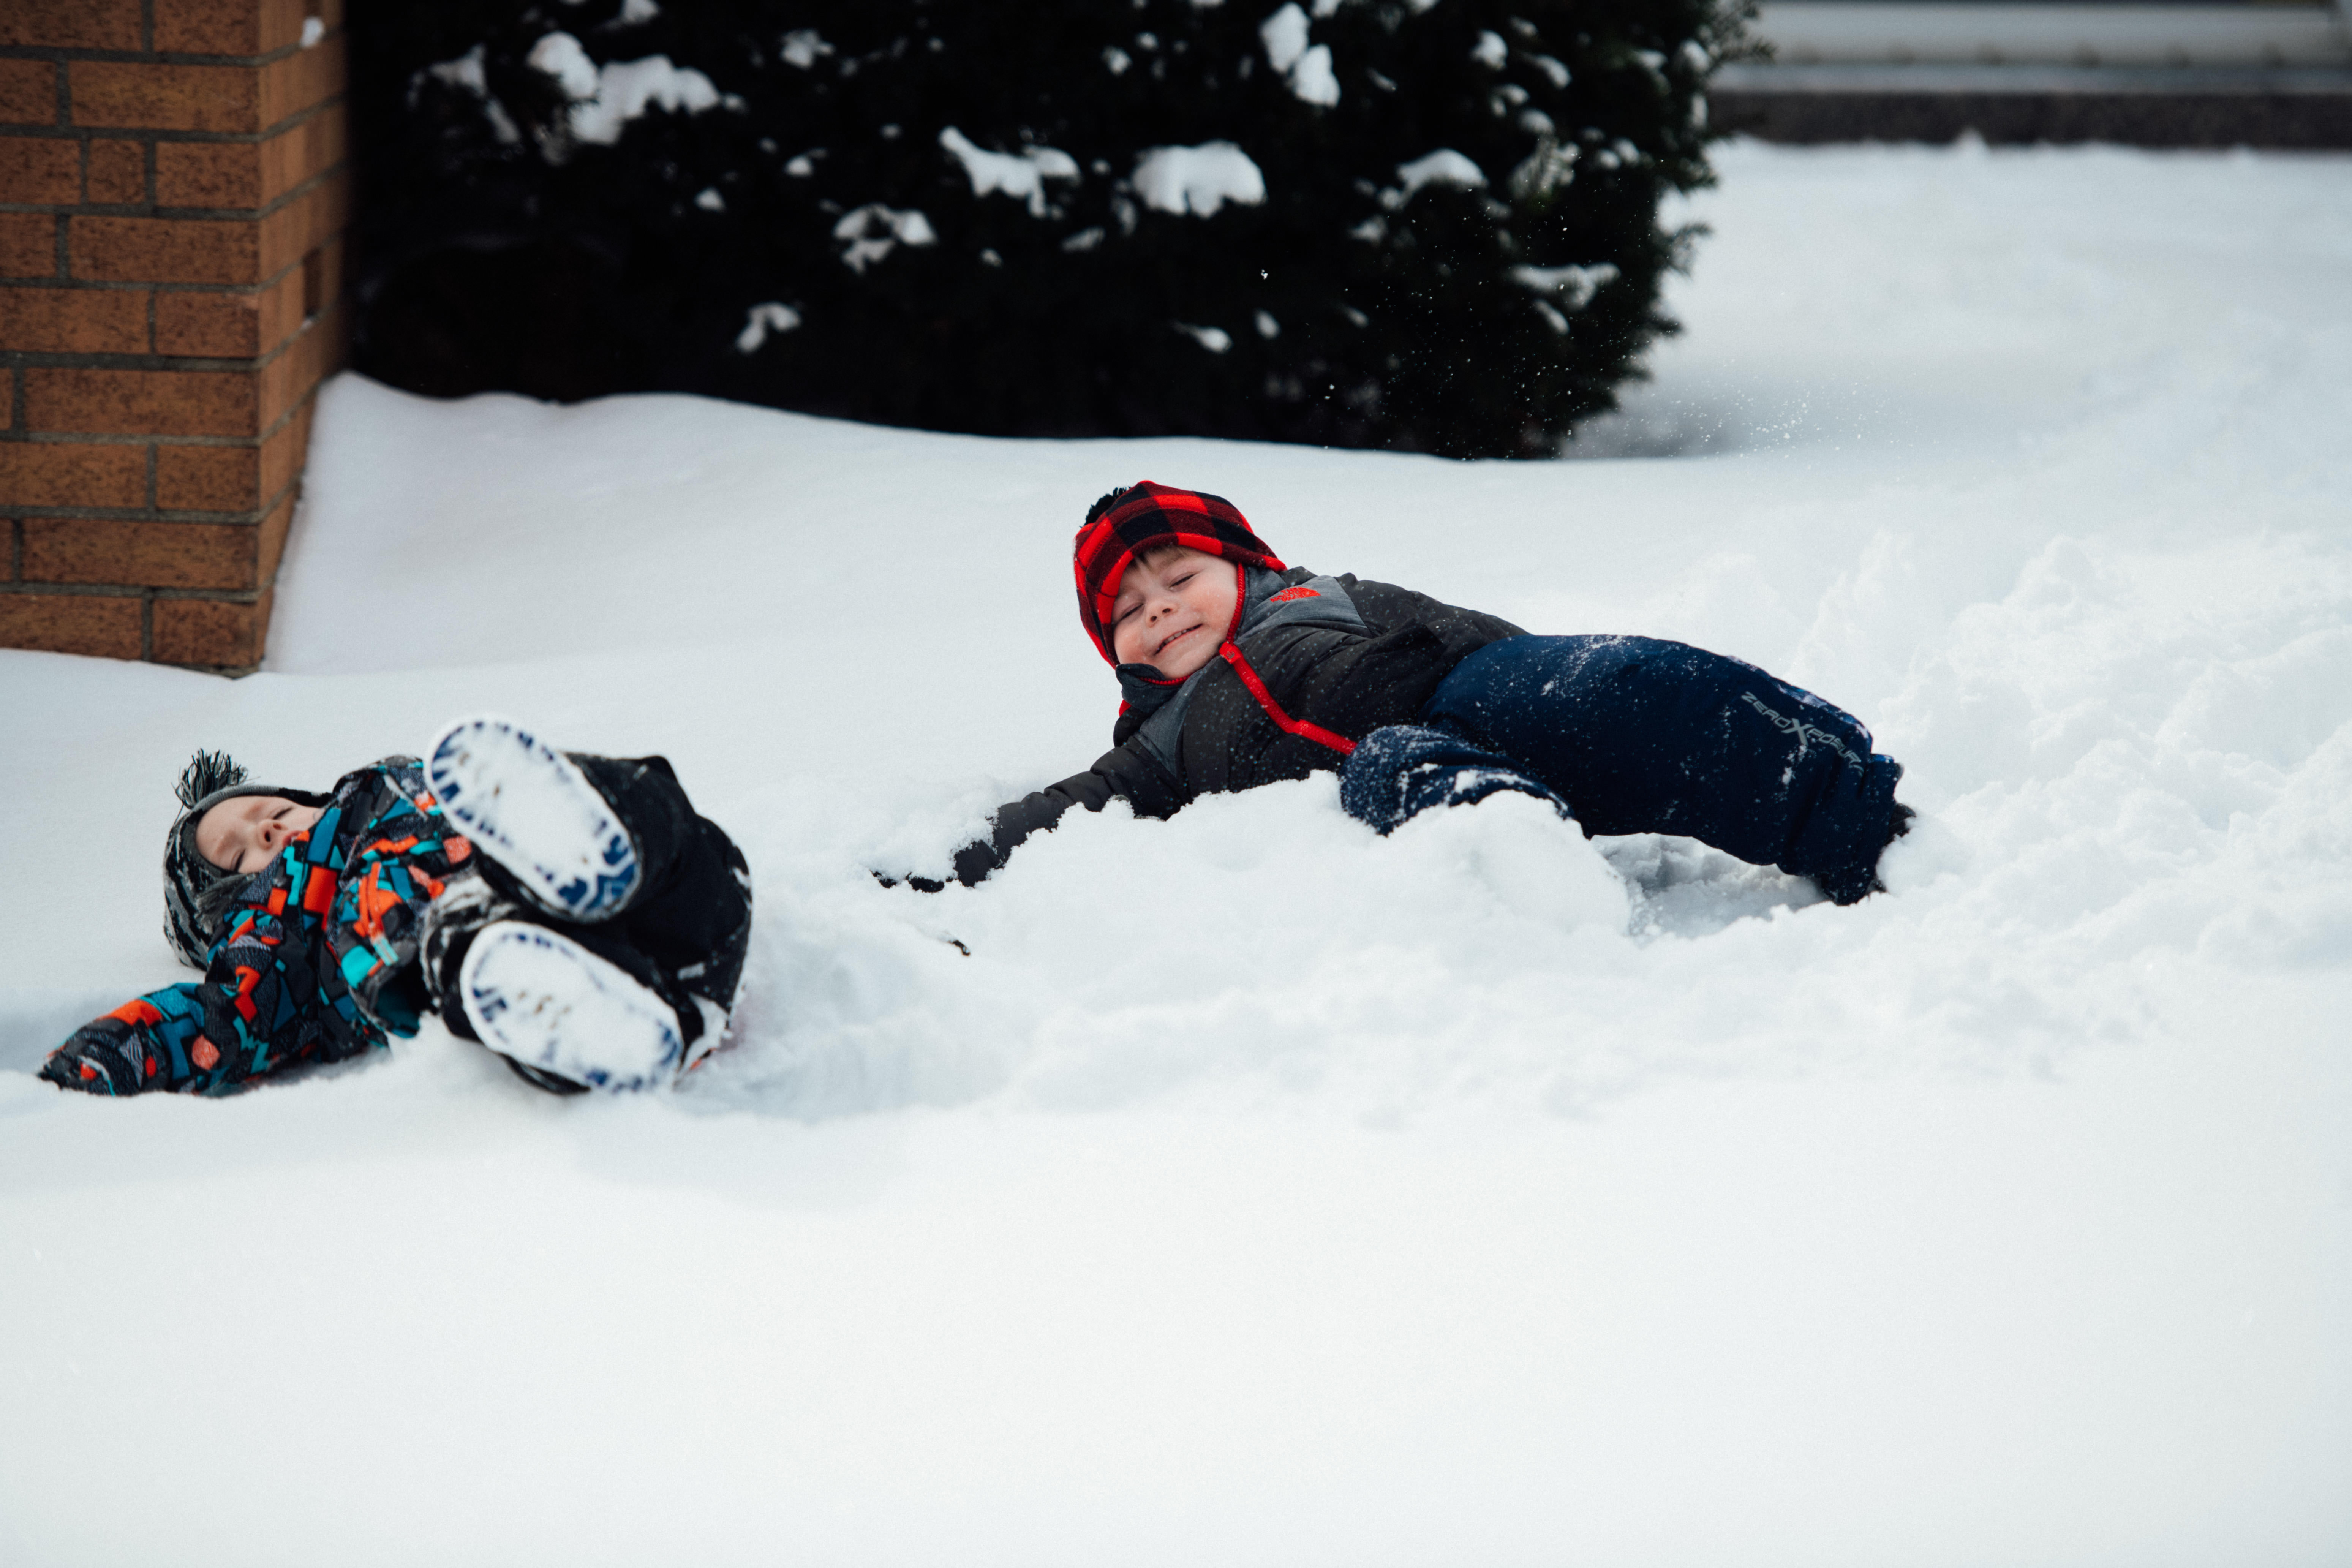 Rolling in the snow on a fun snow day